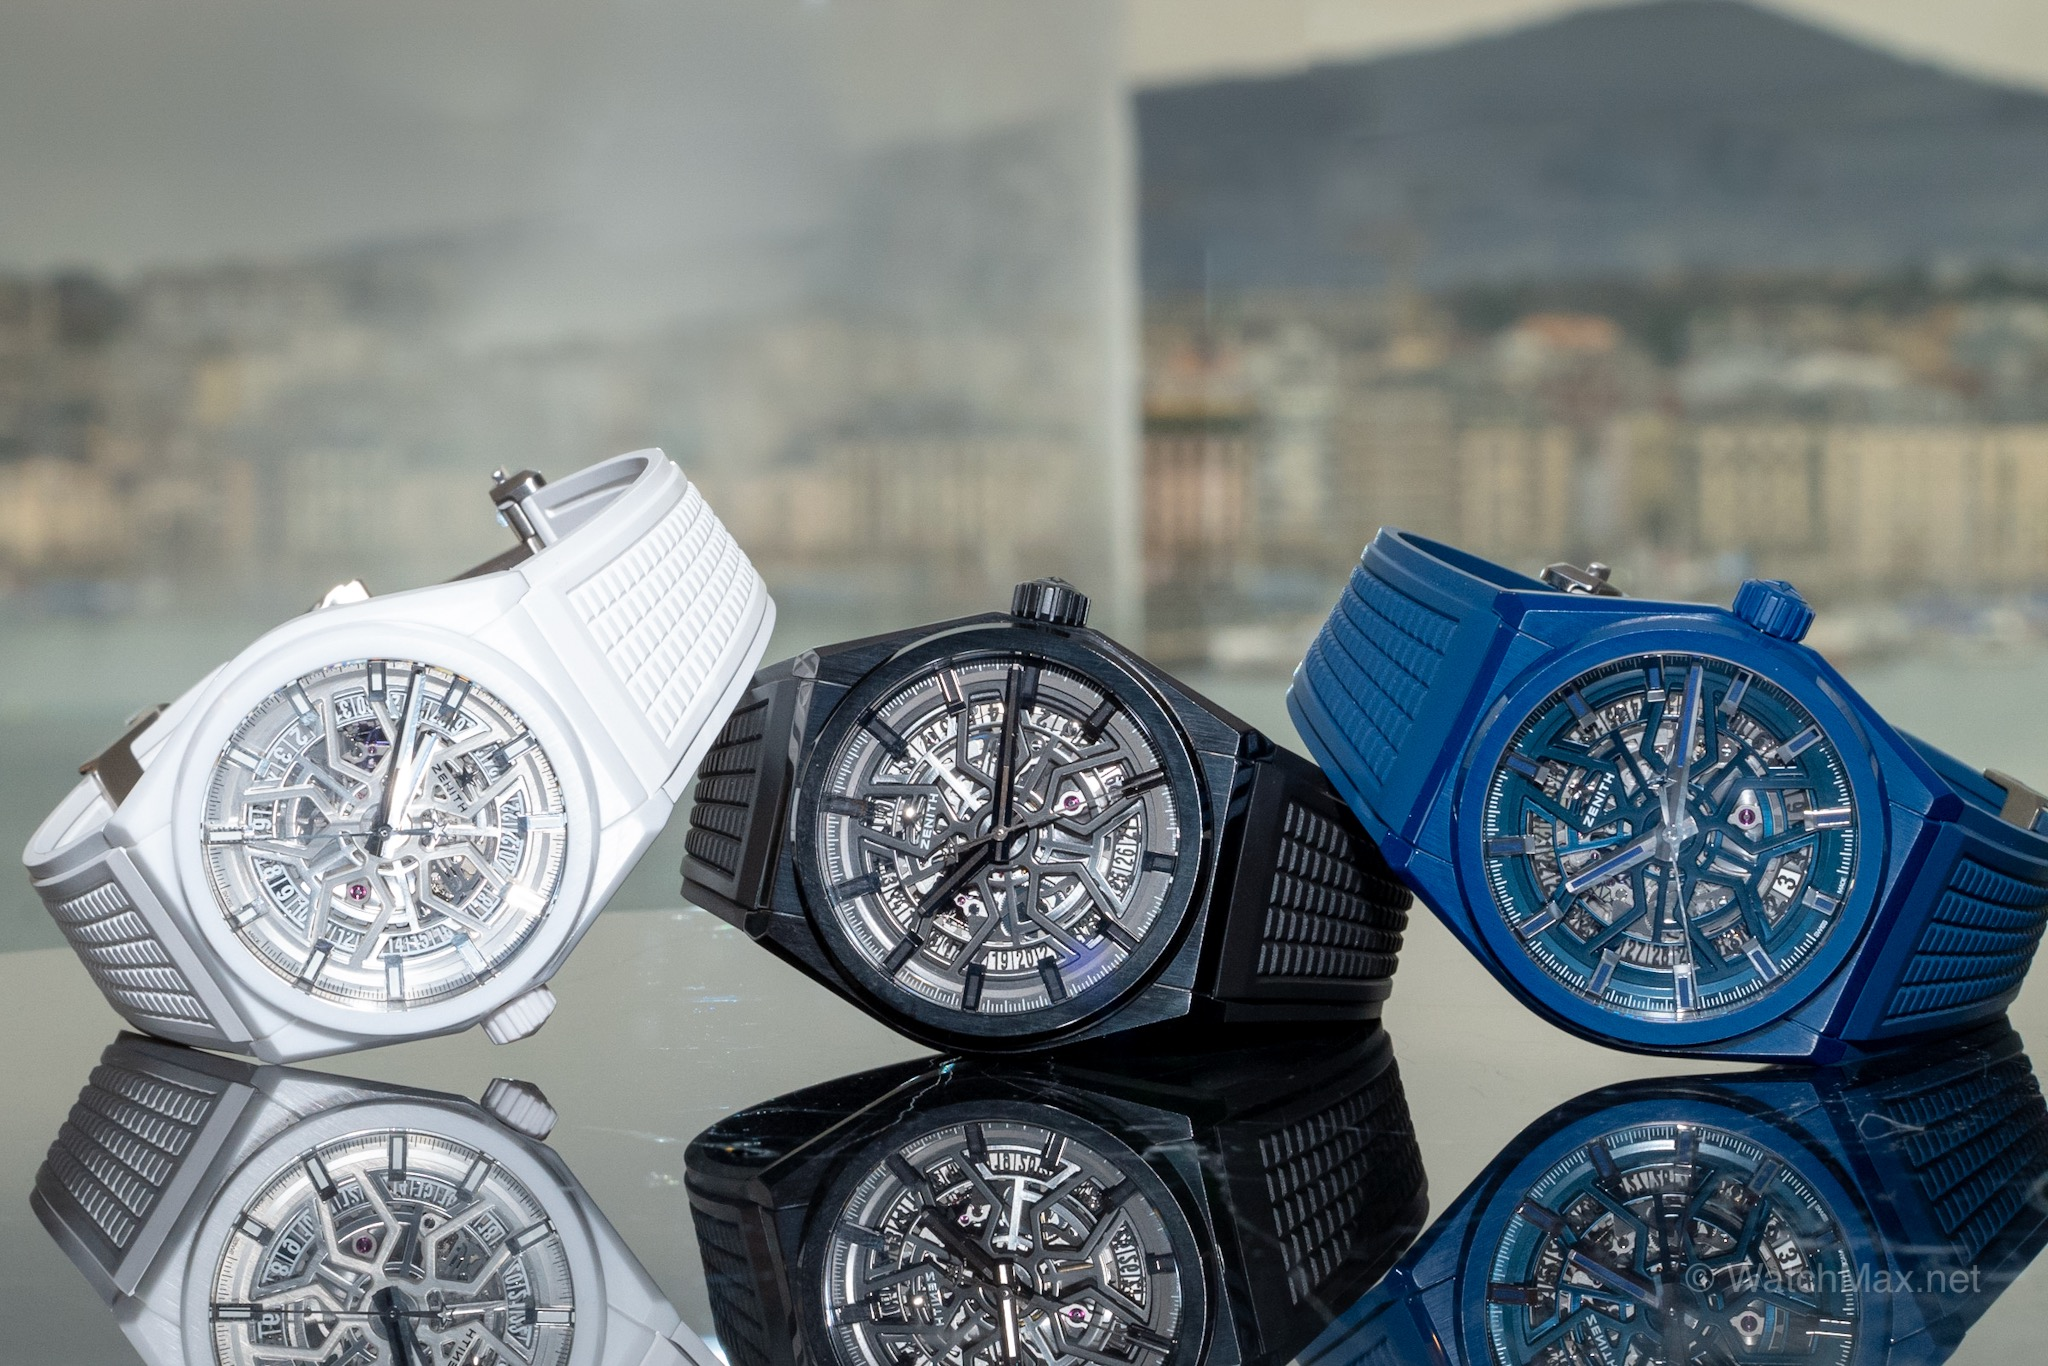 Zenith novelties first look @ Geneva Days 2019 - Zenith is celebrating the 50th anniversary of its famous El Primero movement. During Geneva Days the innovative brand gave a sneak peek at their novelties. Read more